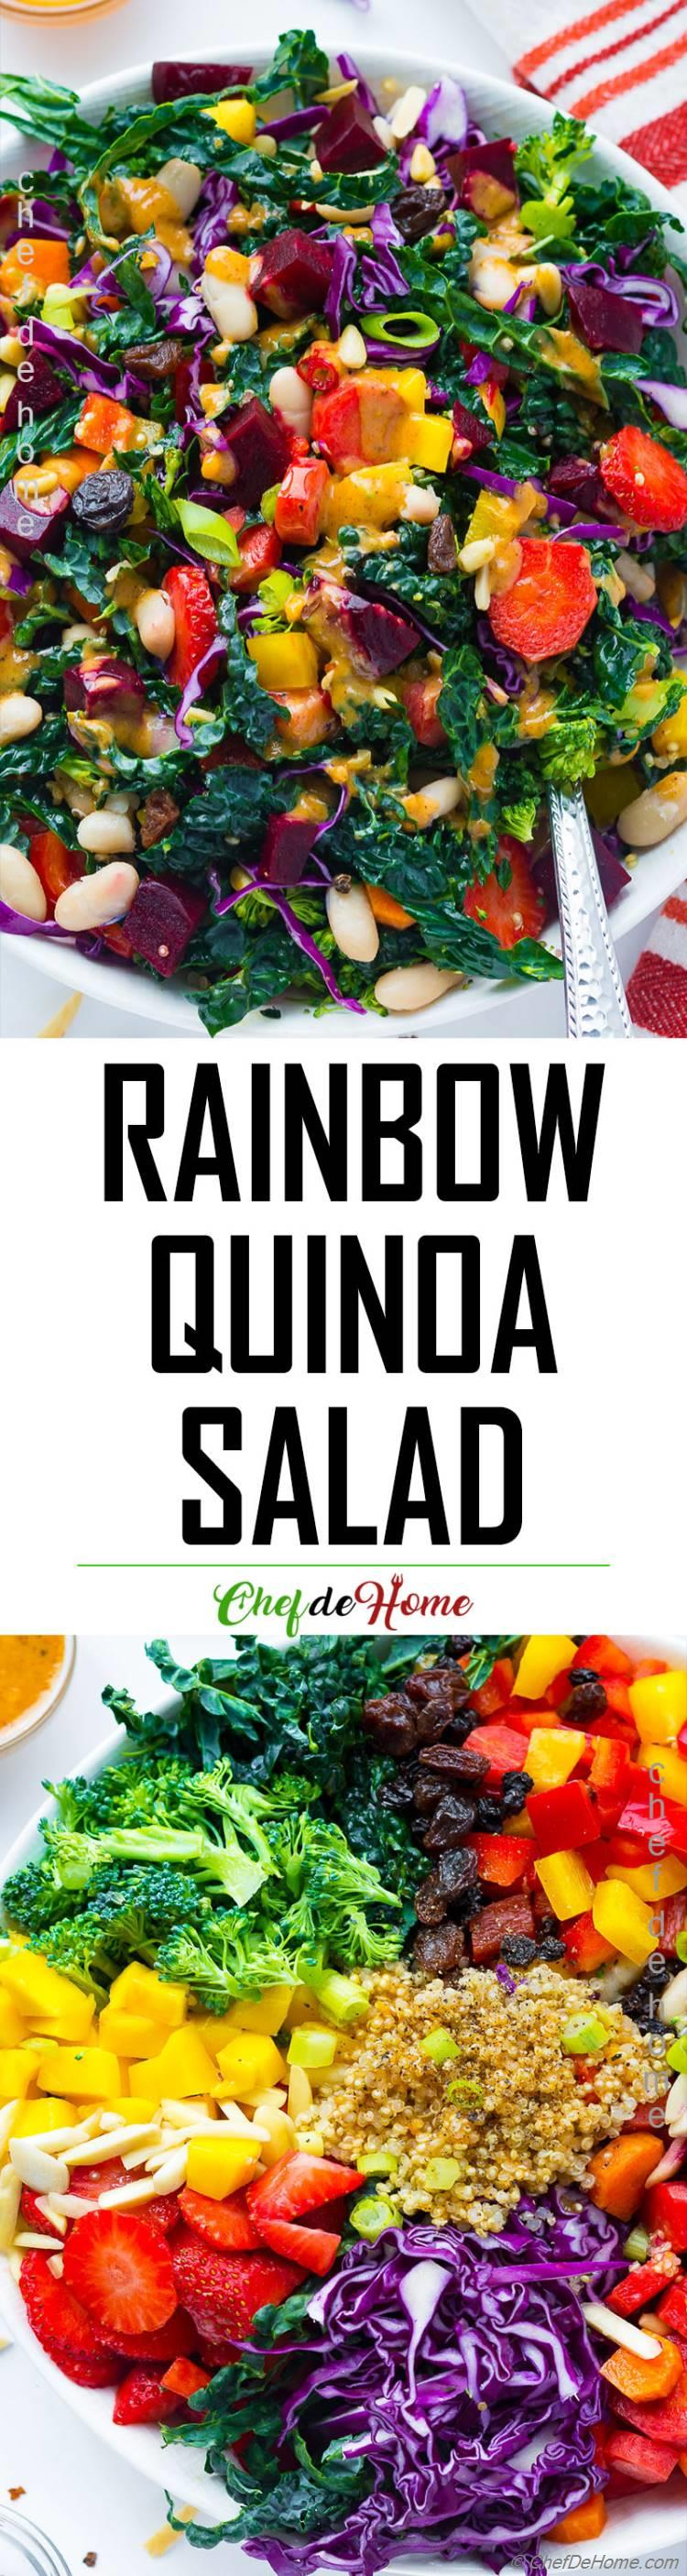 Summer Garden Salad with Rainbow Veggies and Quinoa